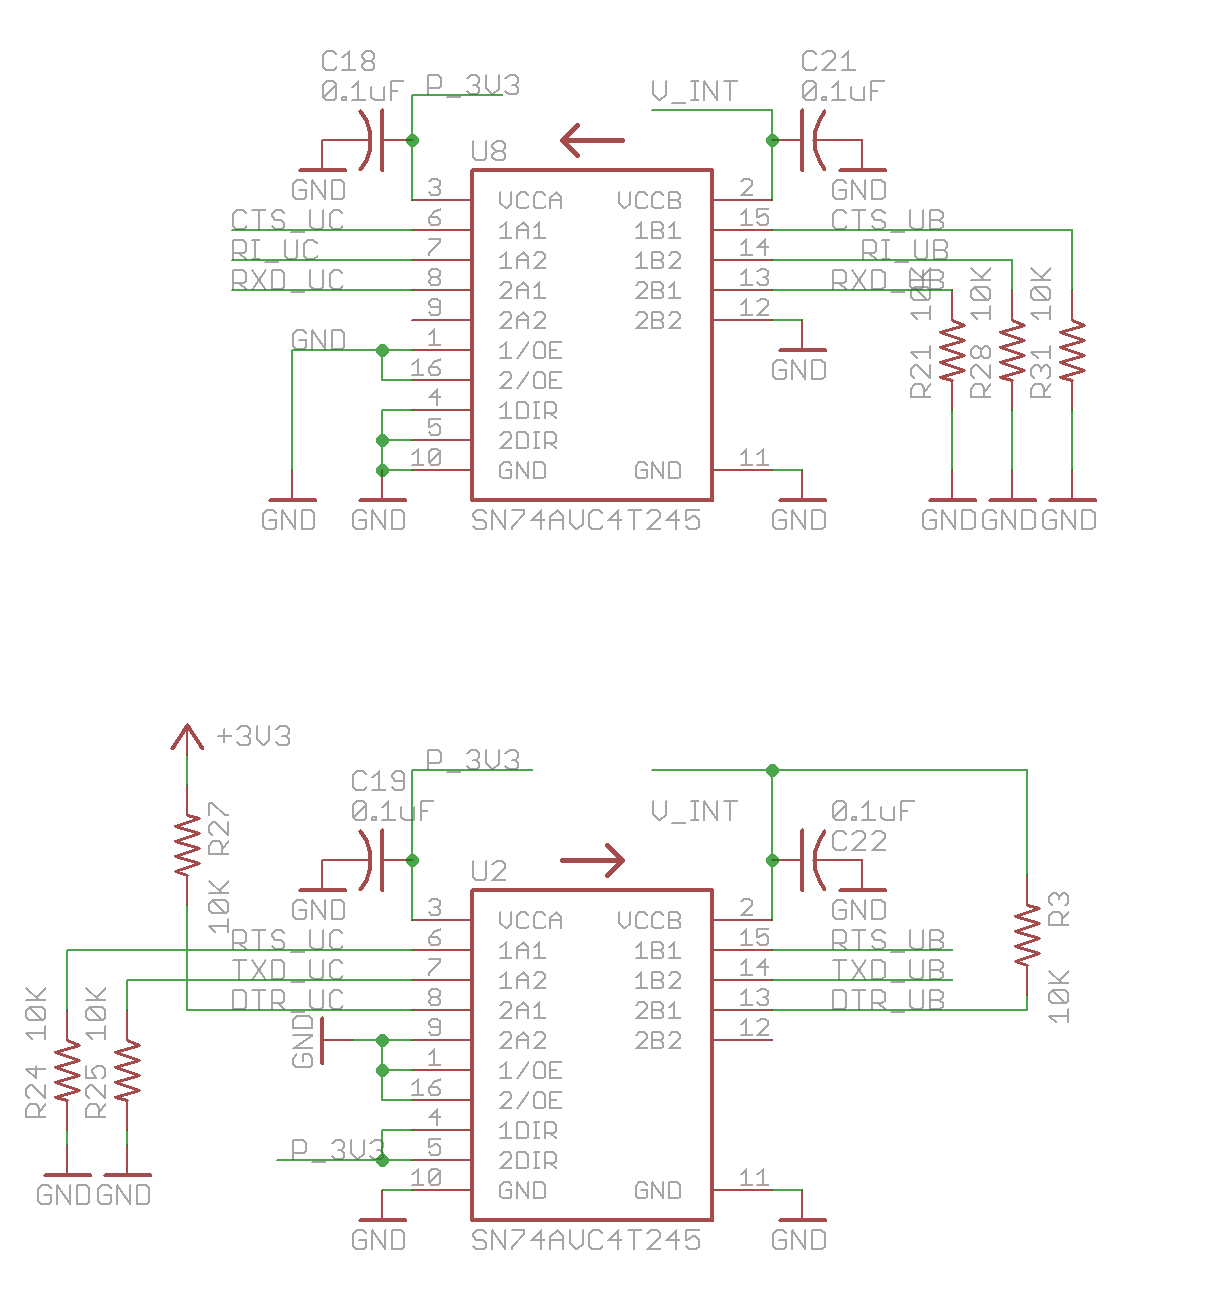 Particle Datasheets Electron Datasheet Circuit Diagram U Since Blox Modules Communication Interface Operates At 18vdc While The Stm32f205rgt6 Microcontroller 33vdc We Need Voltage Translators